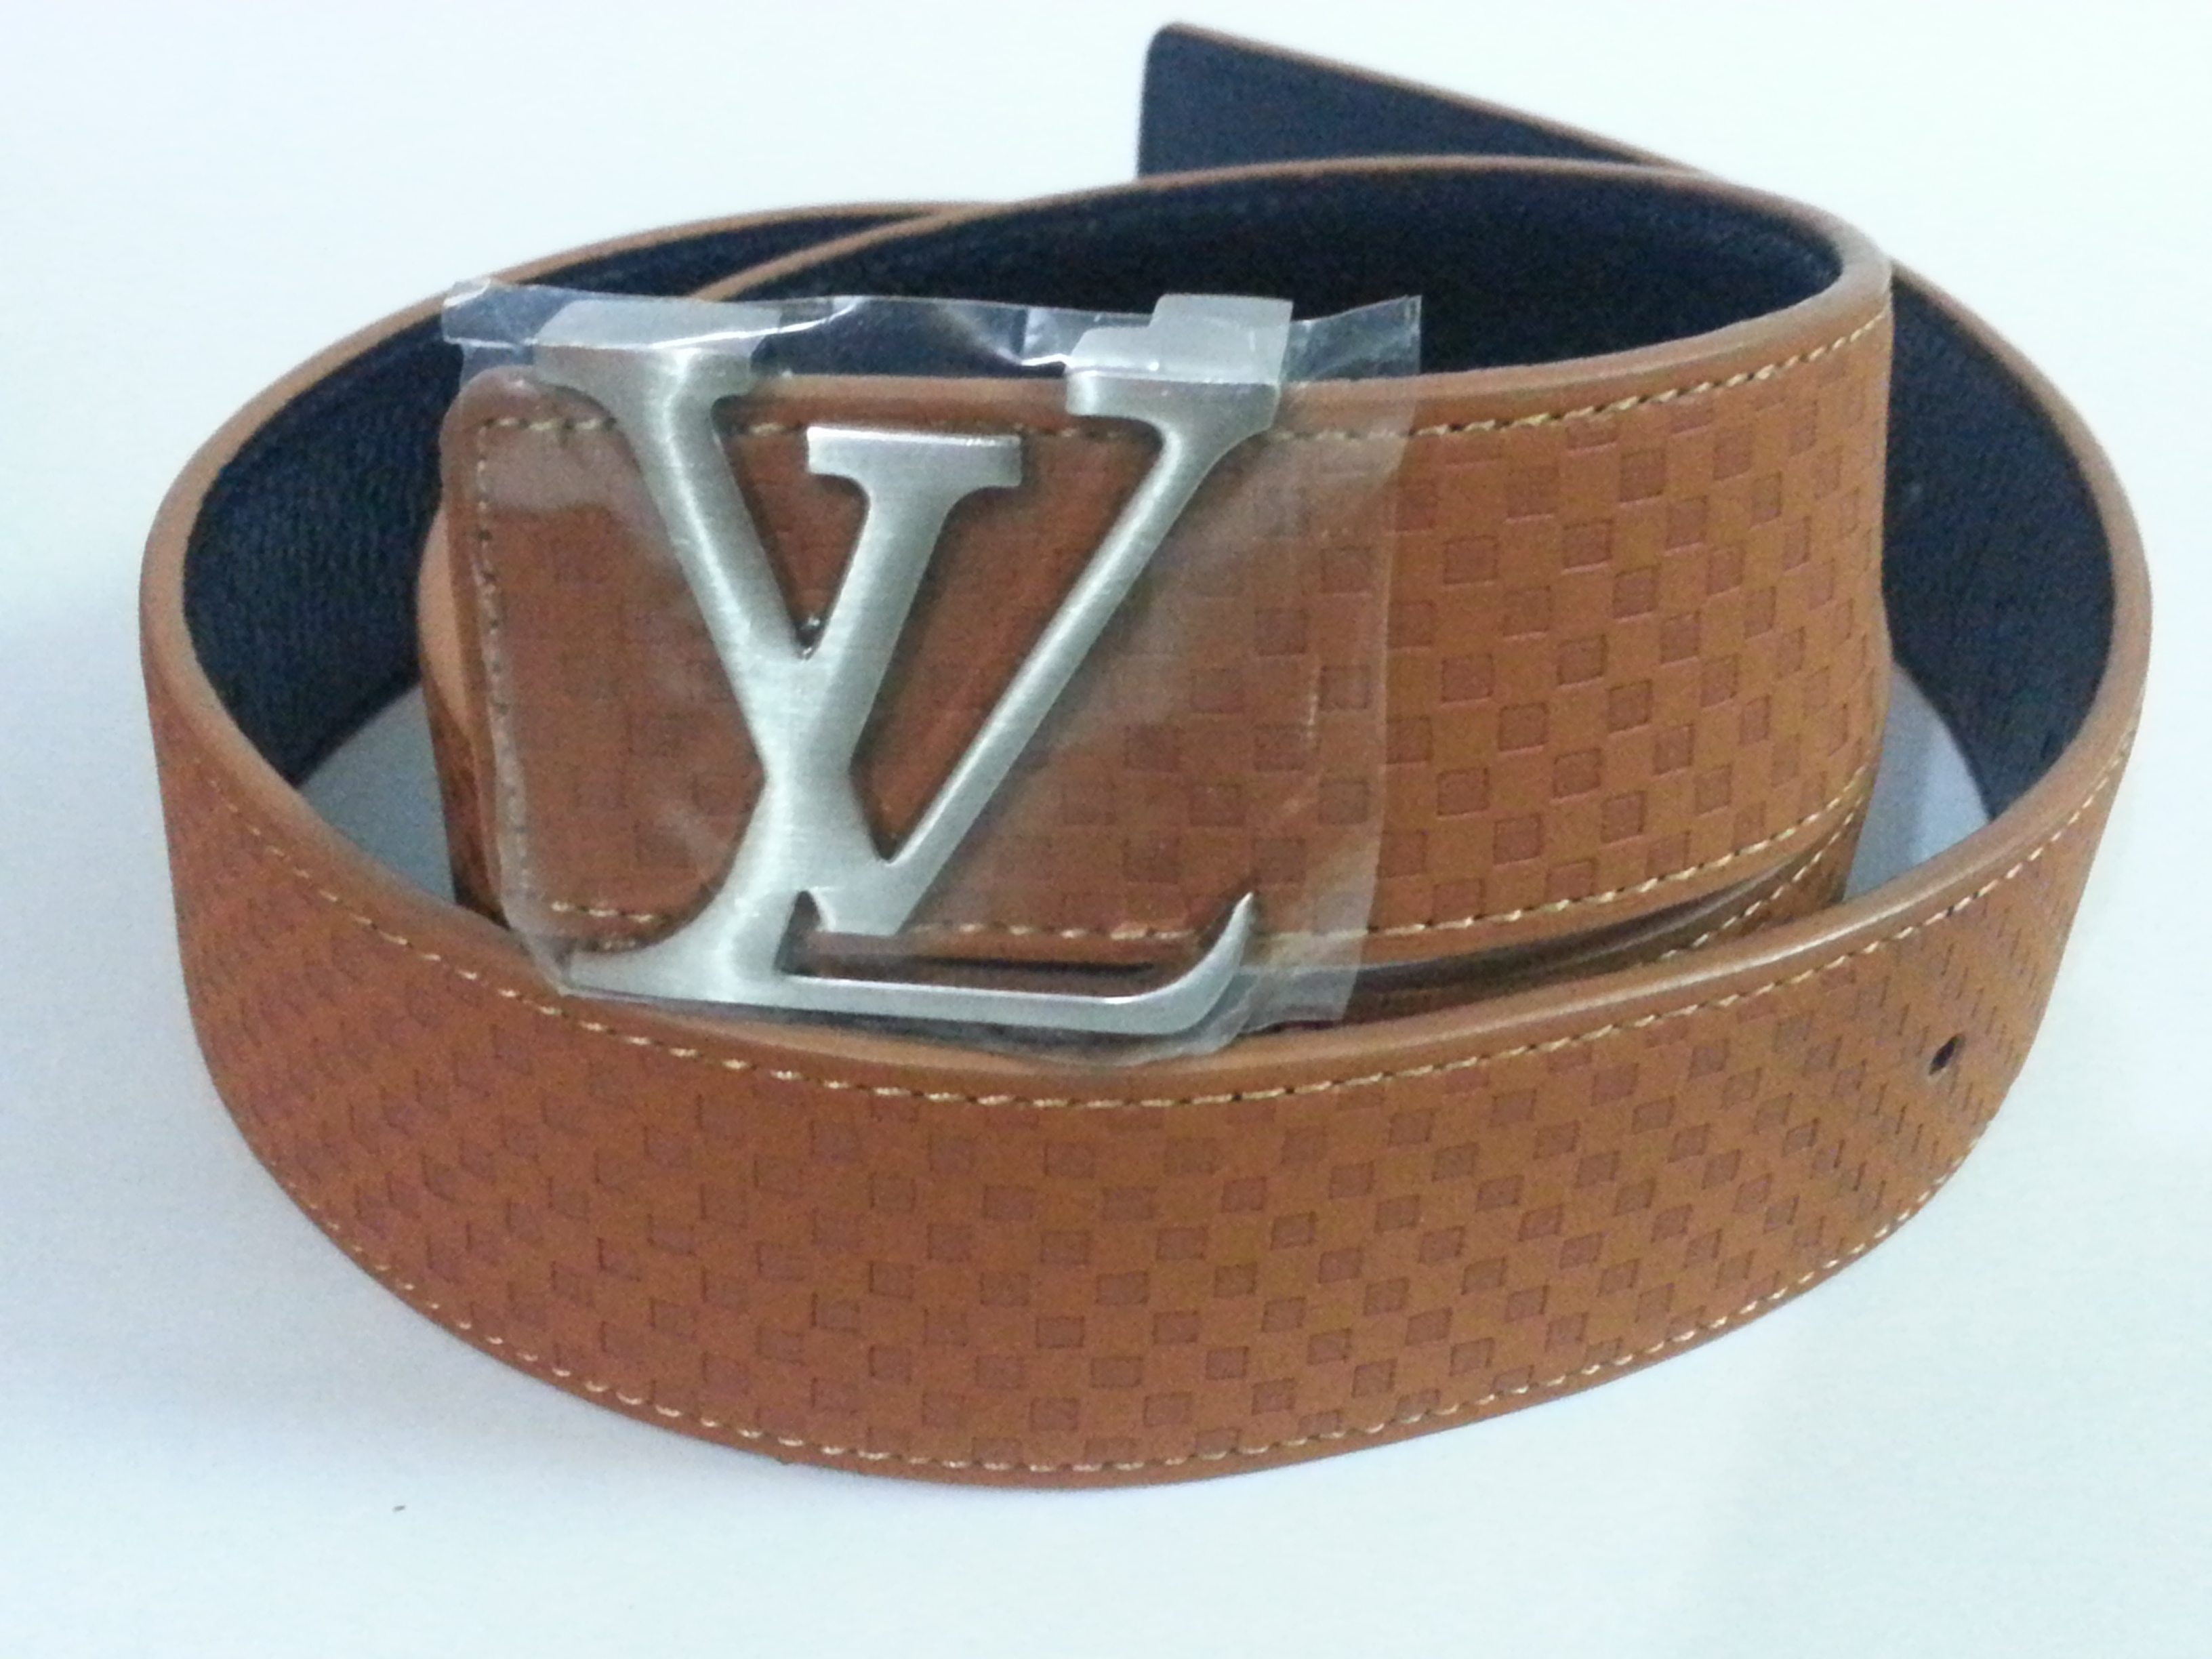 Louis Vuitton Belt Latest Men Free Gift Prices in India ...